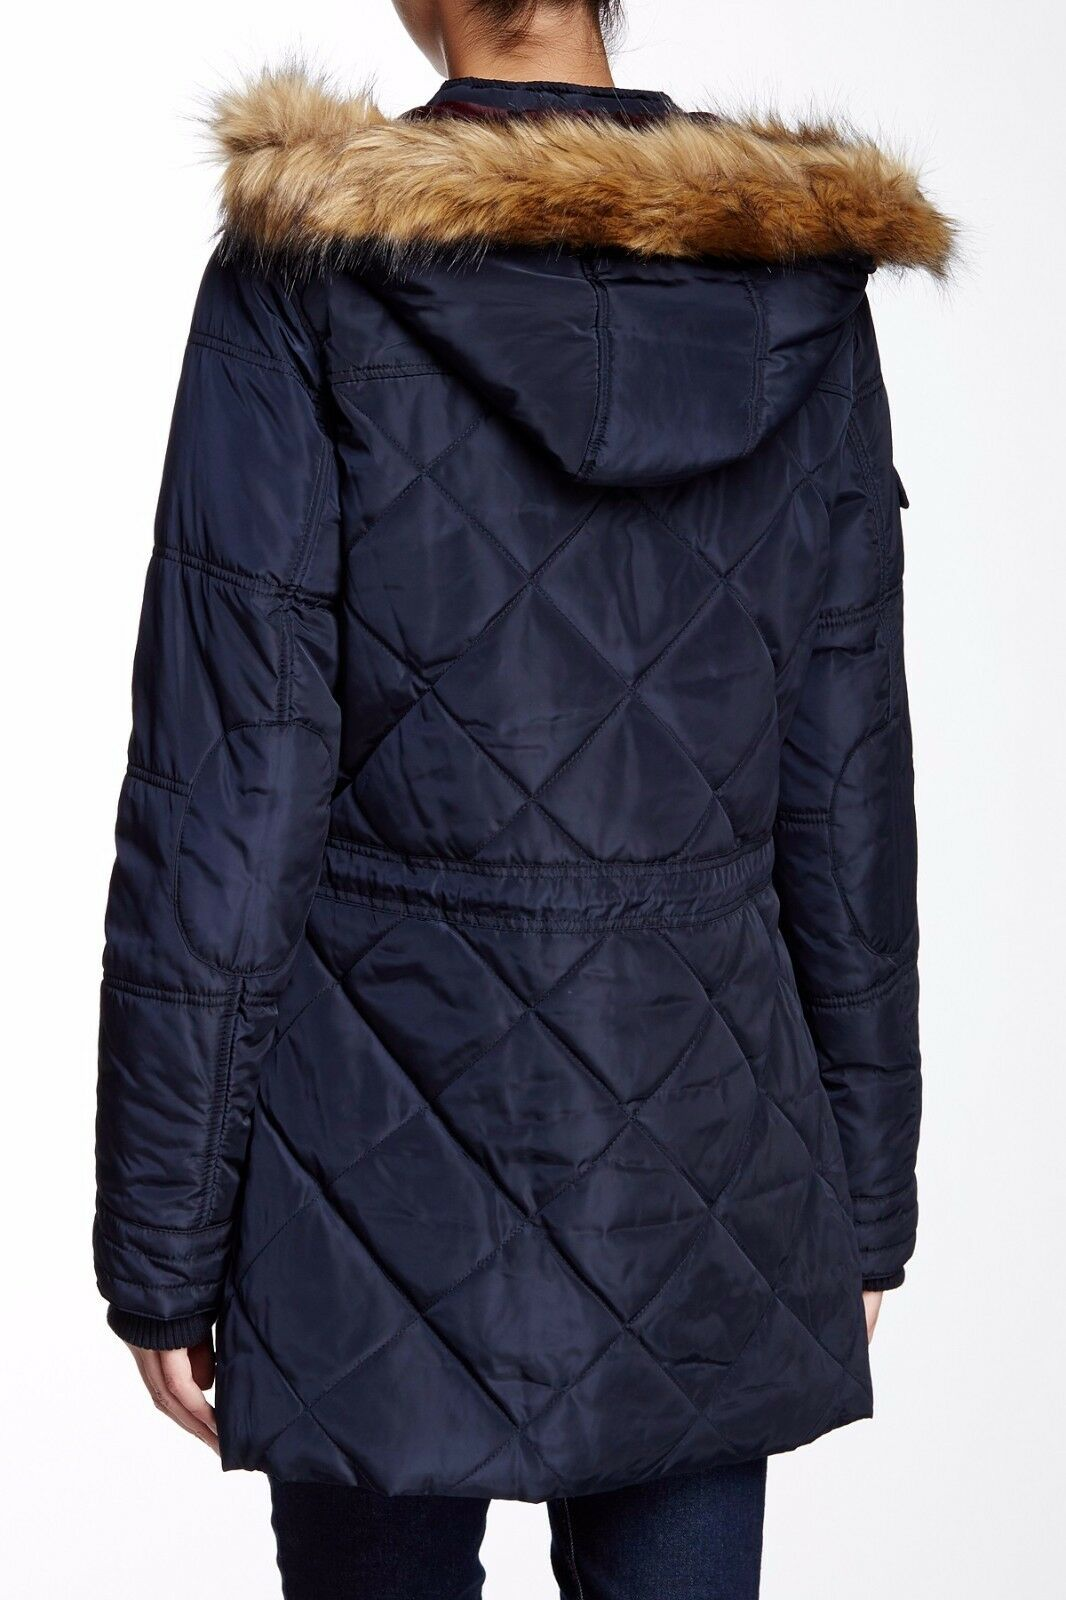 With Tag - Levi's Faux Fur Hood Diamond Quilted Navy Parka Size S ...